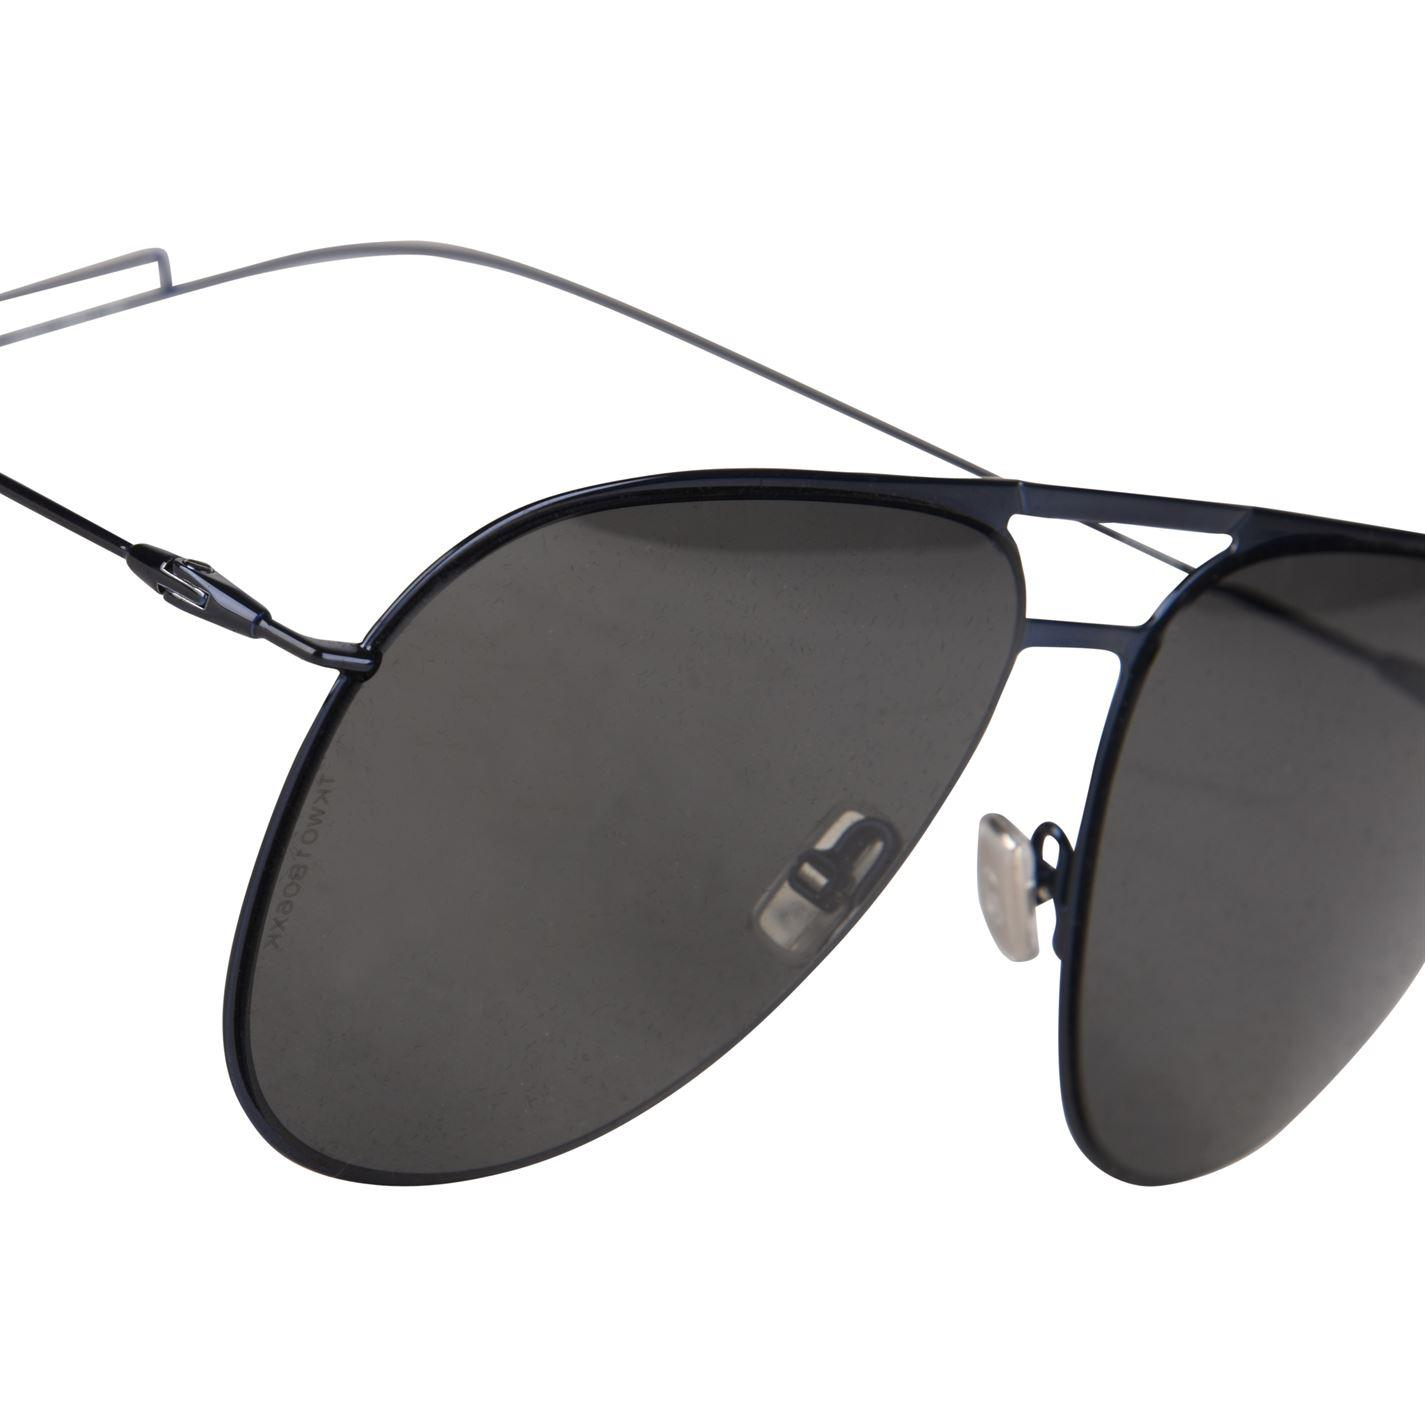 21eee0e449981 Lyst - Dior Homme 0205s Sunglasses in Blue